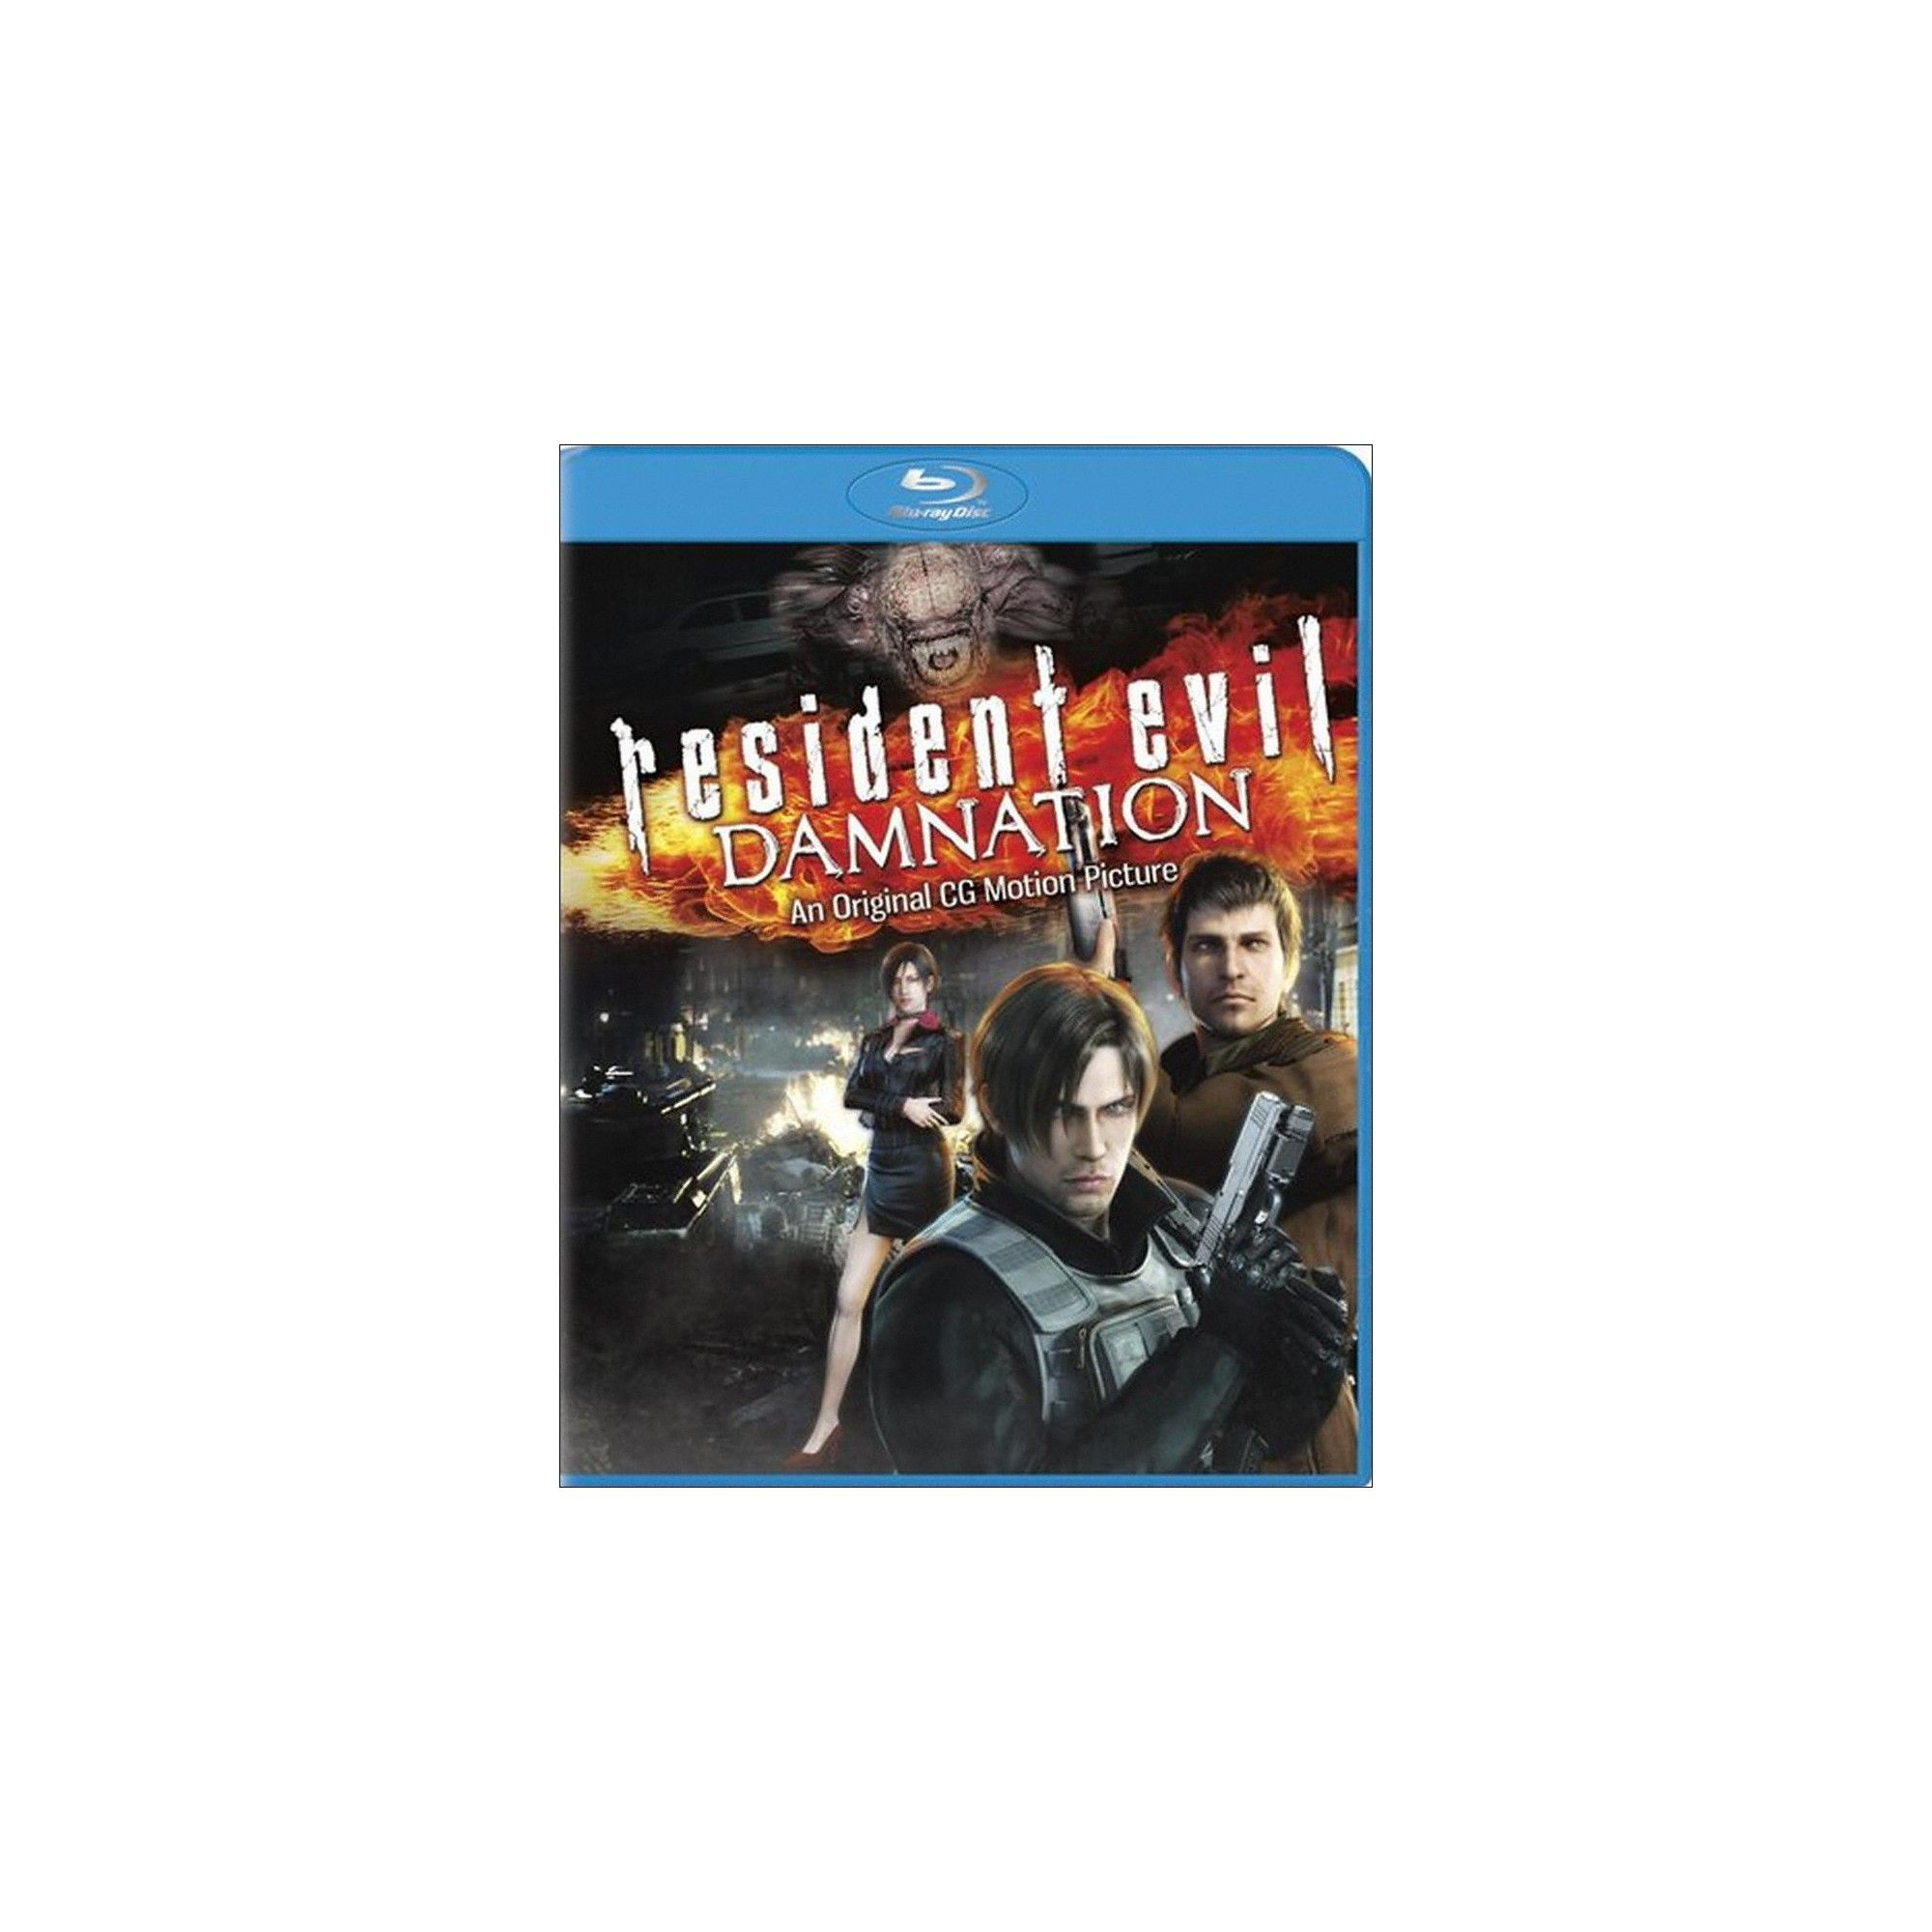 Resident Evil Damnation Blu Ray Includes Digital Copy Ultraviolet Resident Evil Evil Ultra Violet